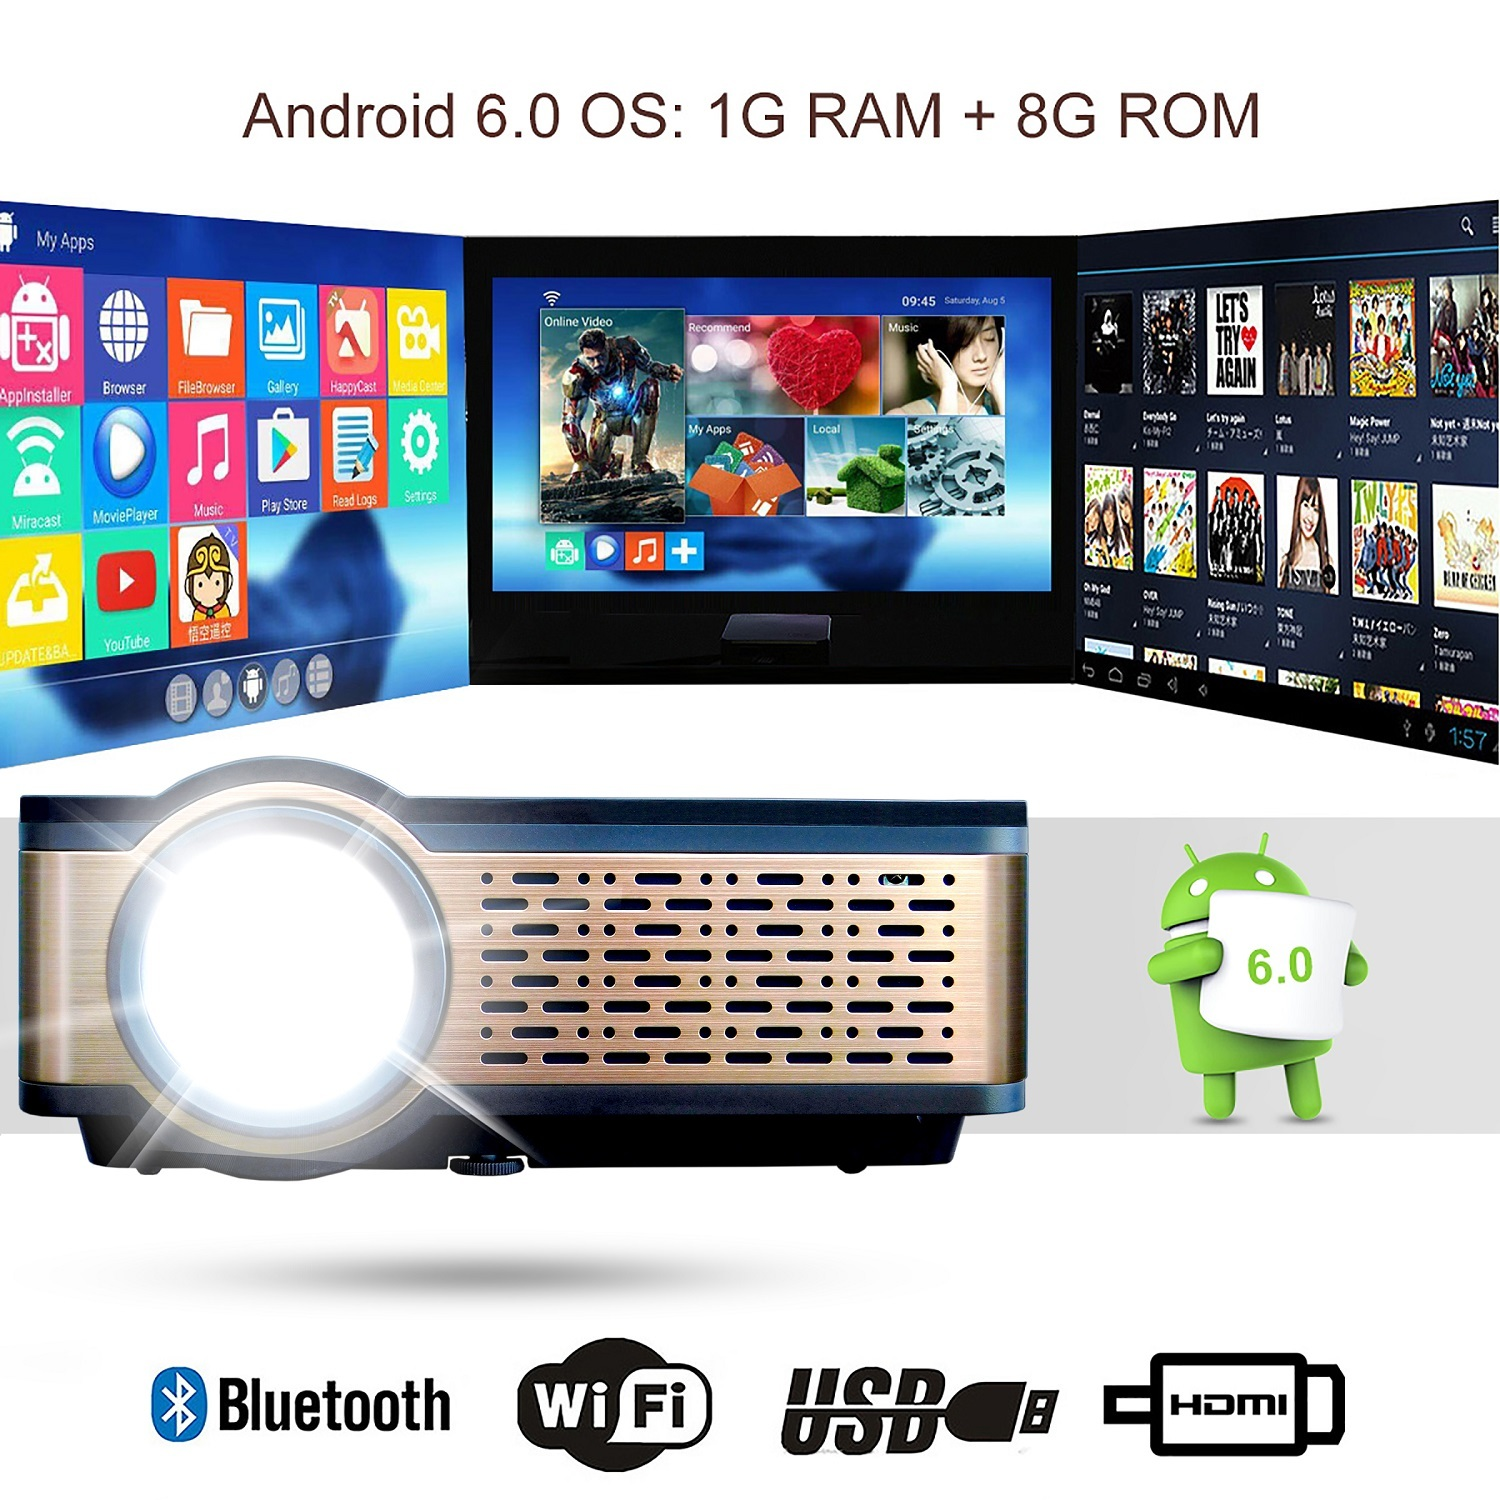 M2 Android LED Video Projector with Miracast, 3800 Lumen Support 1080P Display, Compatible with HDMI, SD, AV, VGA, USB